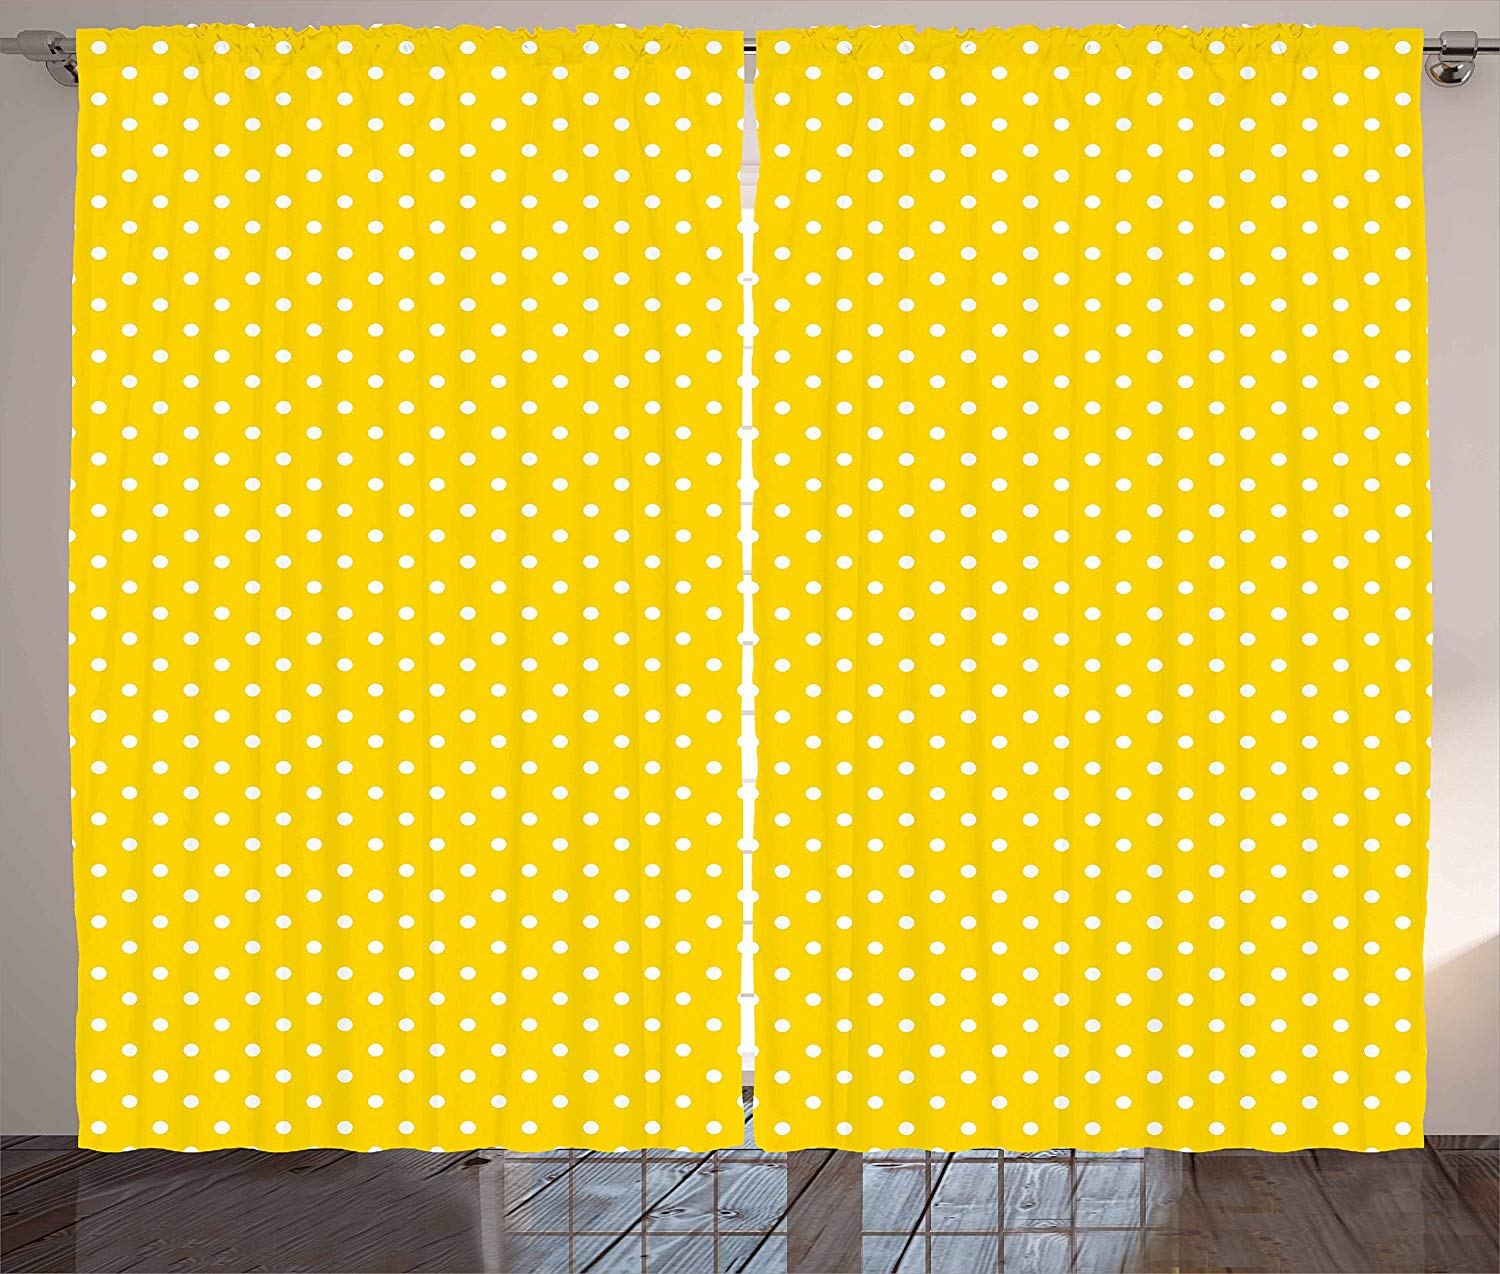 Vintage Yellow Curtains Traditional Polka Dot Pattern Traditional European Spotty Retro Design Living Room Bedroom Window Drapes